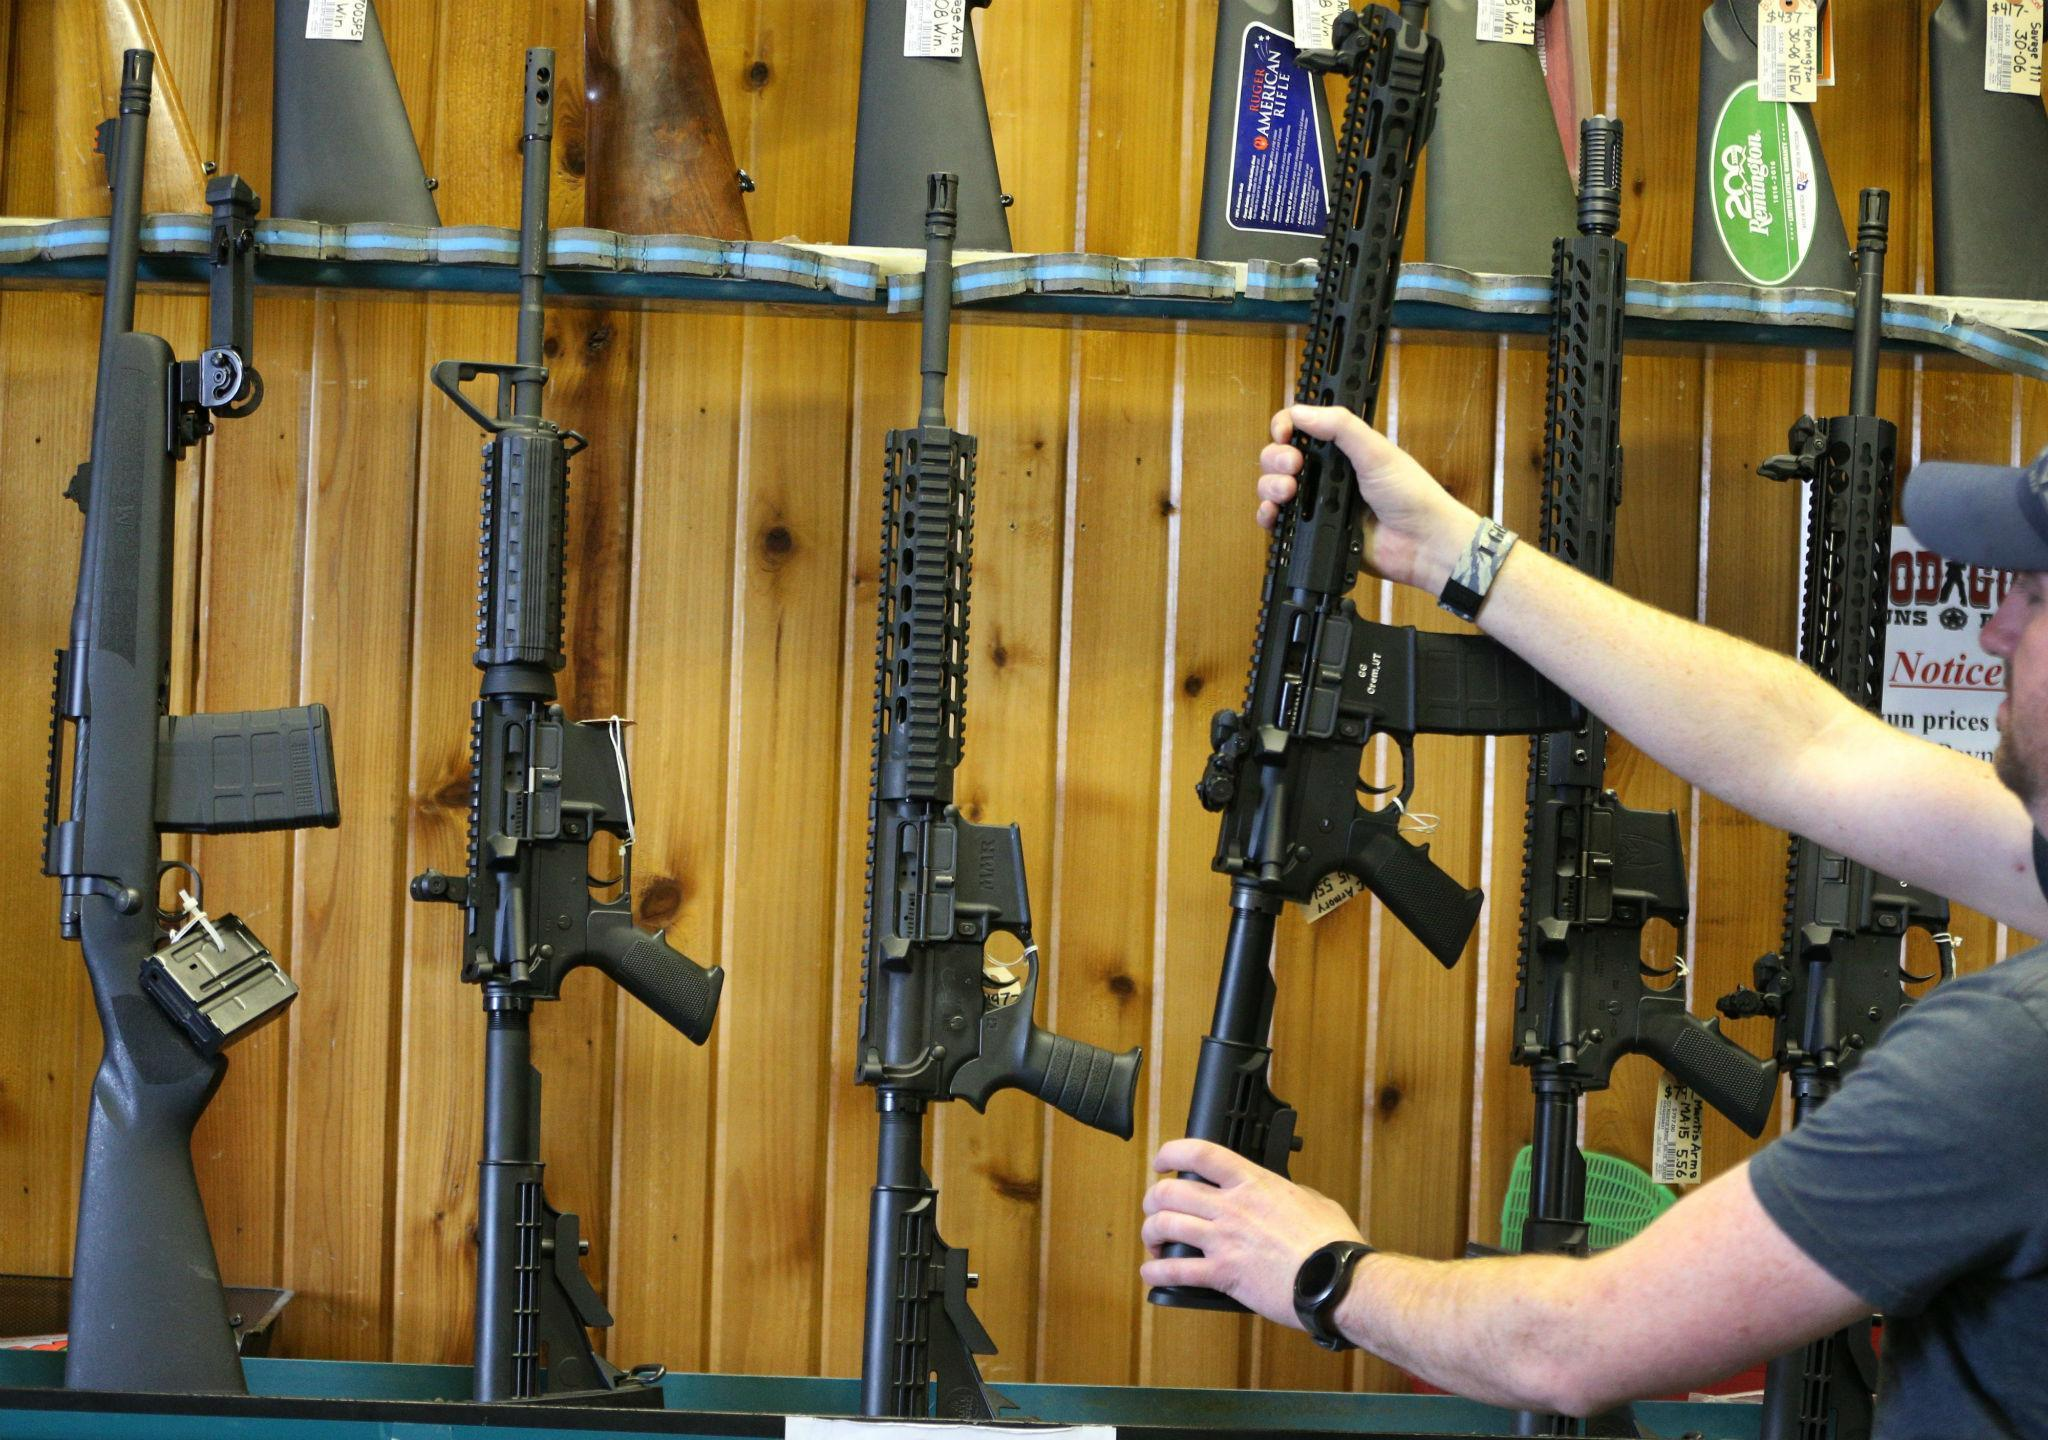 US citizens own 40% of all guns in world - more than next 25